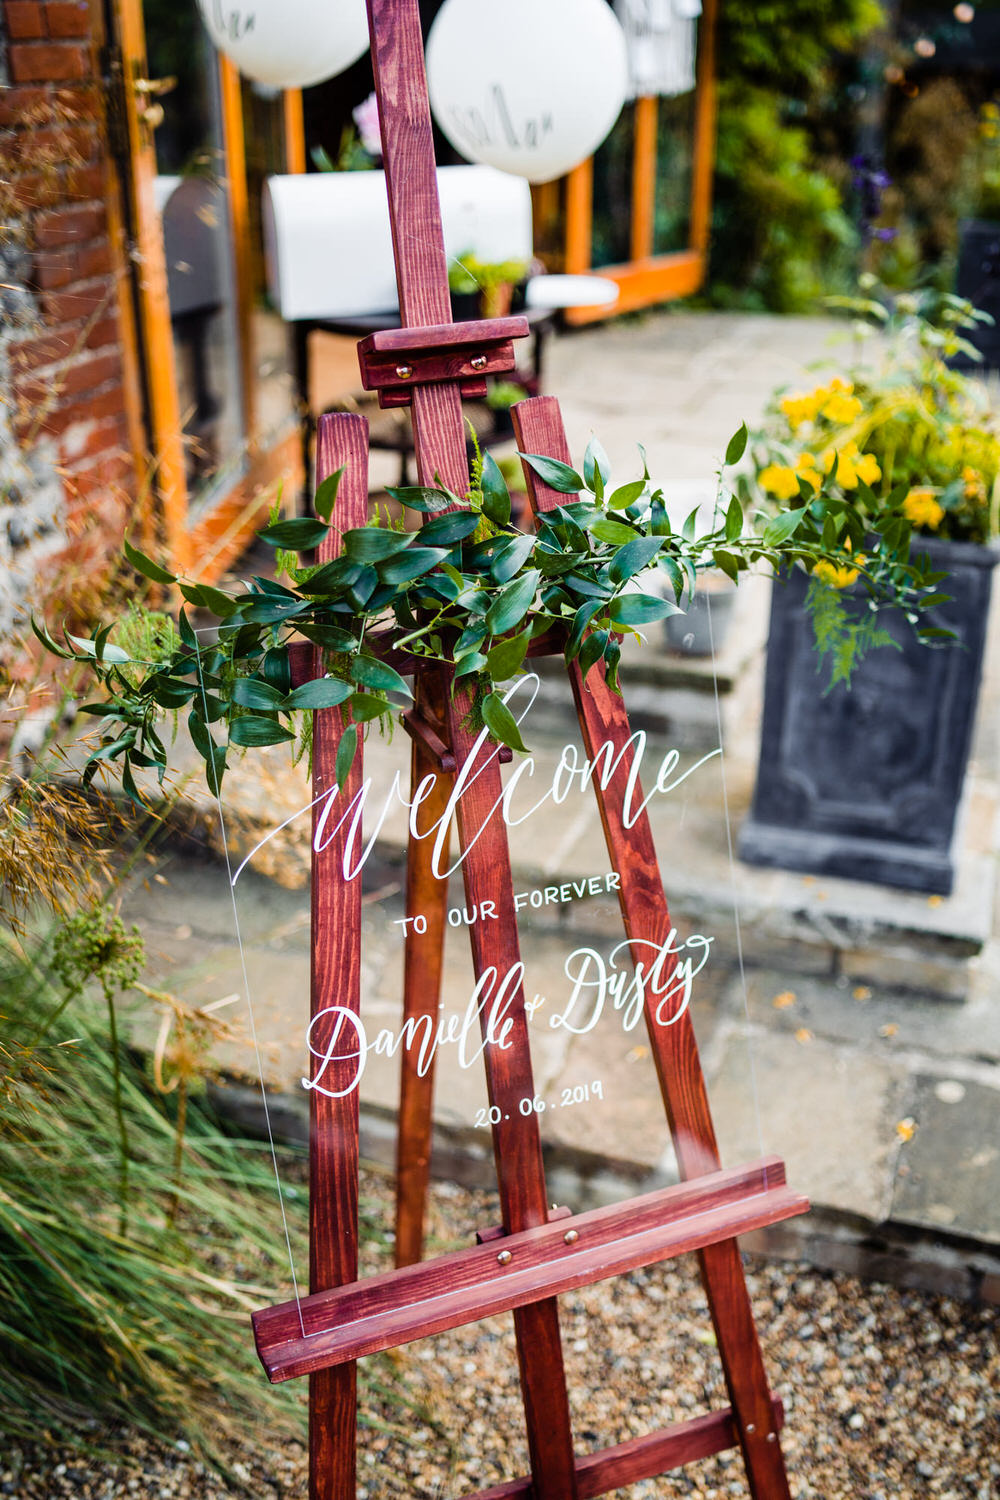 Perspex Sign Acrylic Glass Clear Calligraphy Signage Signs Greenery Foliage Secret Garden Wedding James Powell Photography